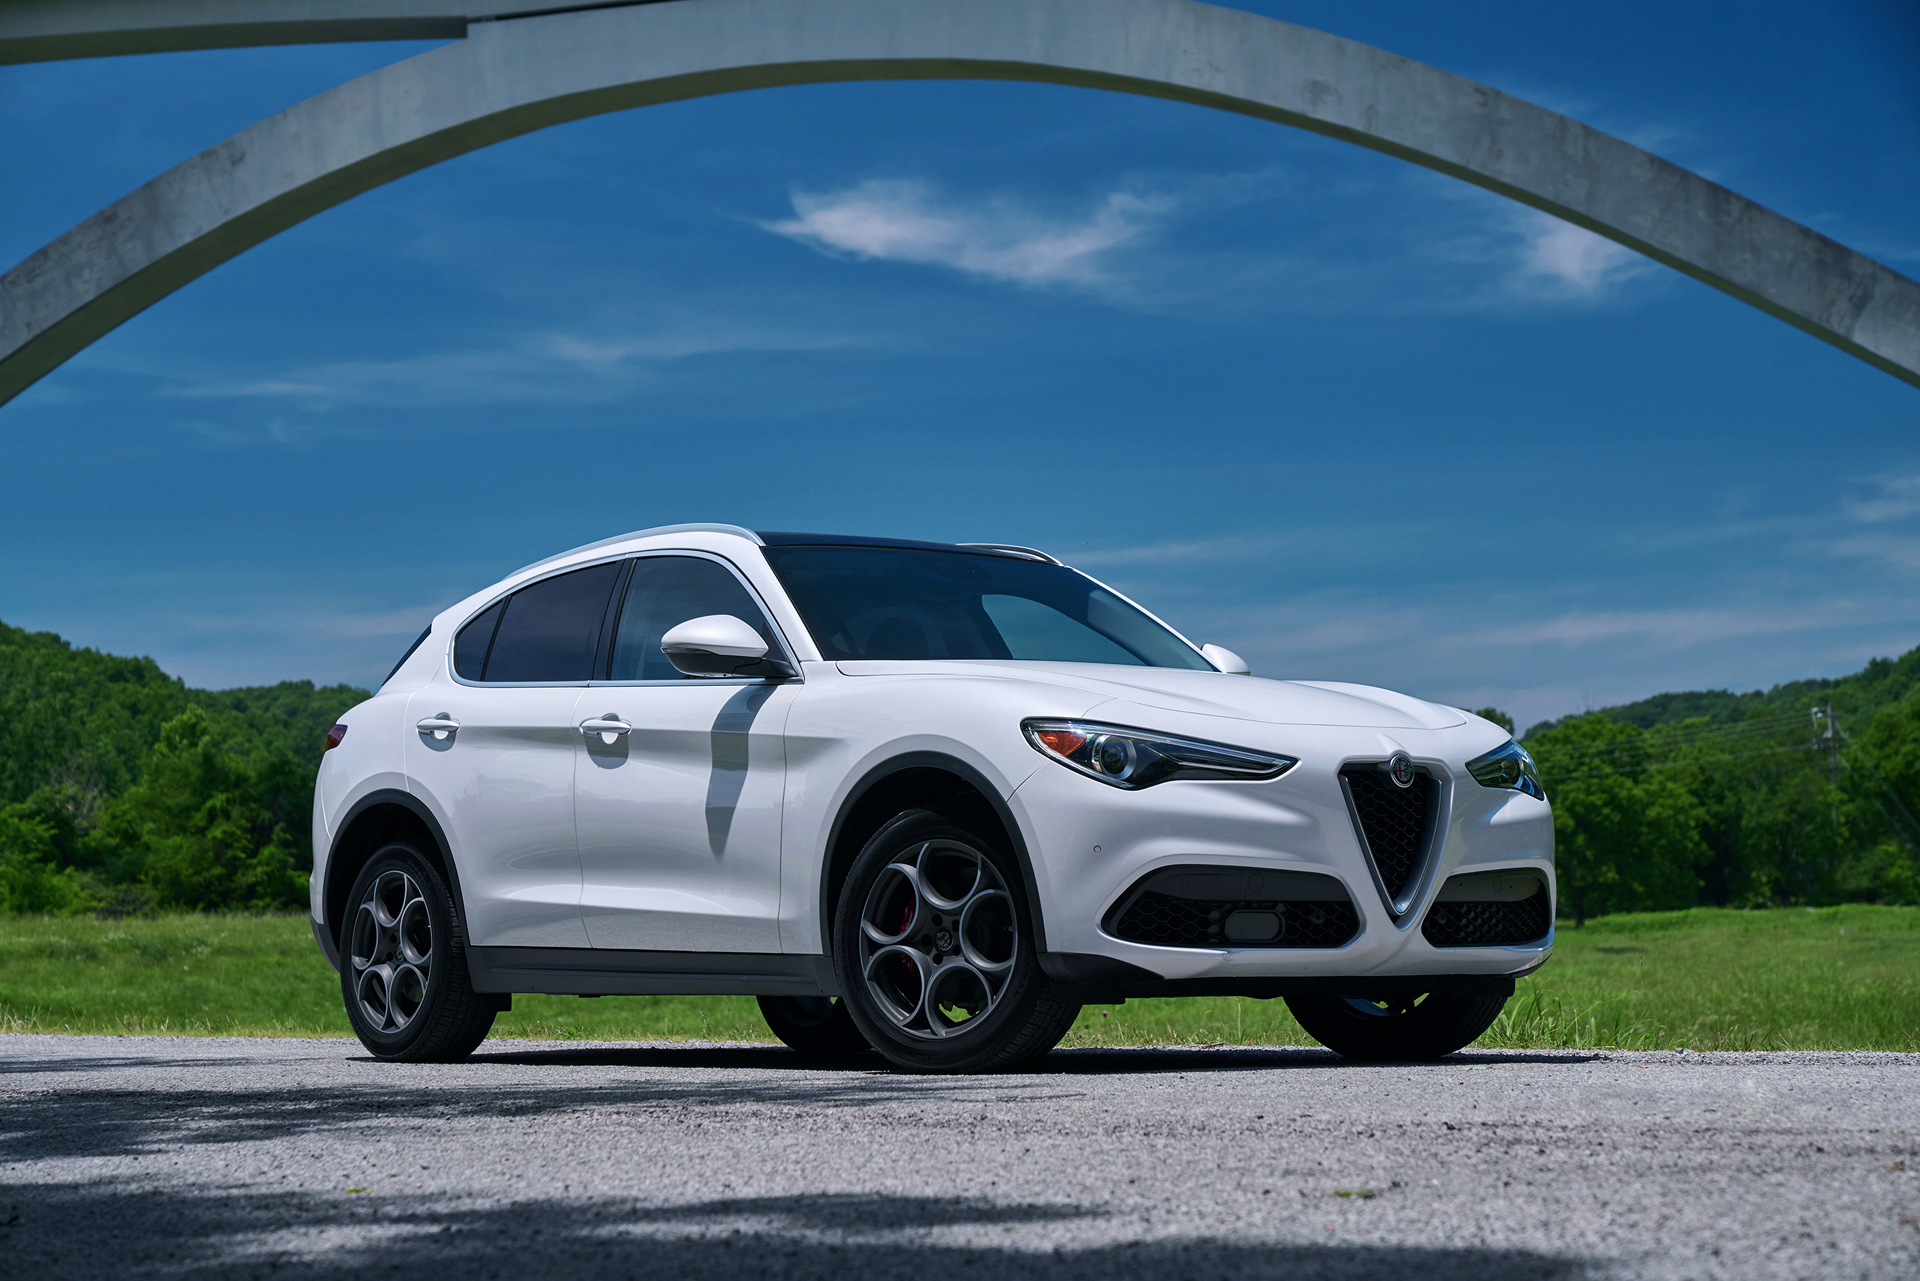 2018 alfa romeo stelvio first drive review the suv we 39 ve been waiting for. Black Bedroom Furniture Sets. Home Design Ideas